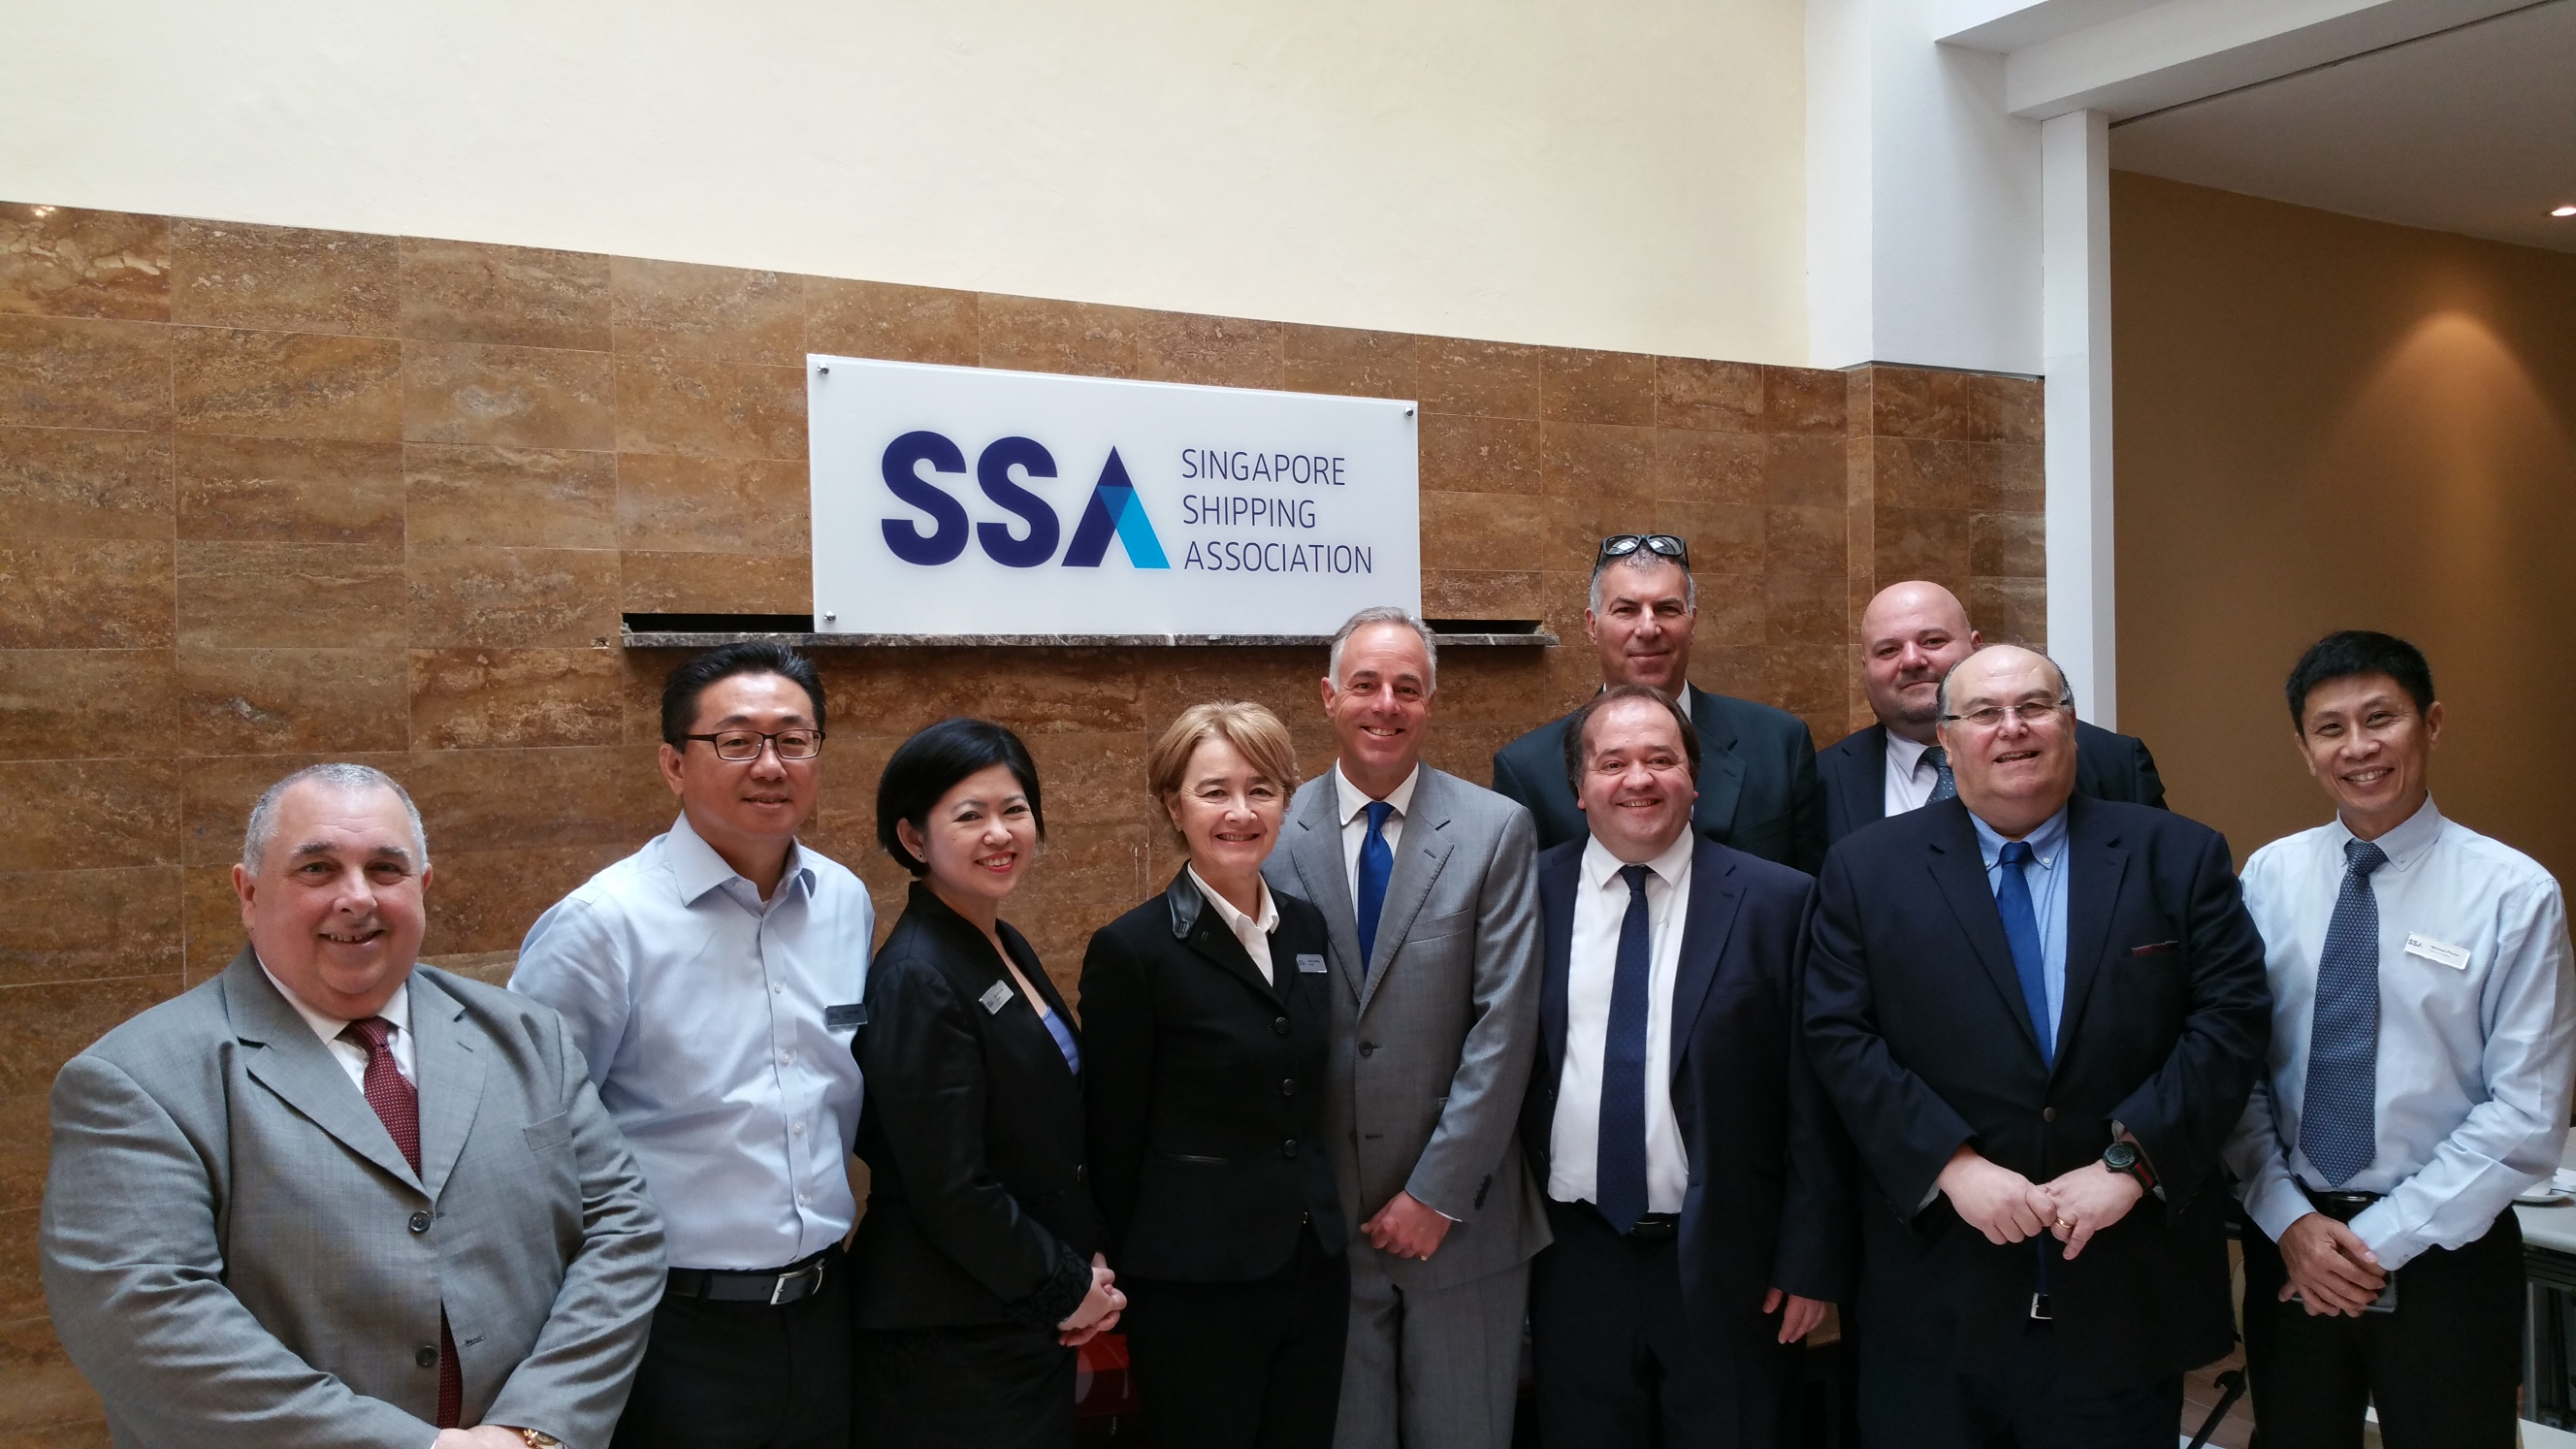 Council members of the Singapore Shipping Association with Gibraltar's Port Operators; First on left – George Dyke; Fifth from left – Commodore Bob Sanguinetti; Back, second from right – Danny Gabay; Back, first from right – Karl Alecio; Front, third from right – Tyrone Payas; Front, second from right – Freddie Pitto